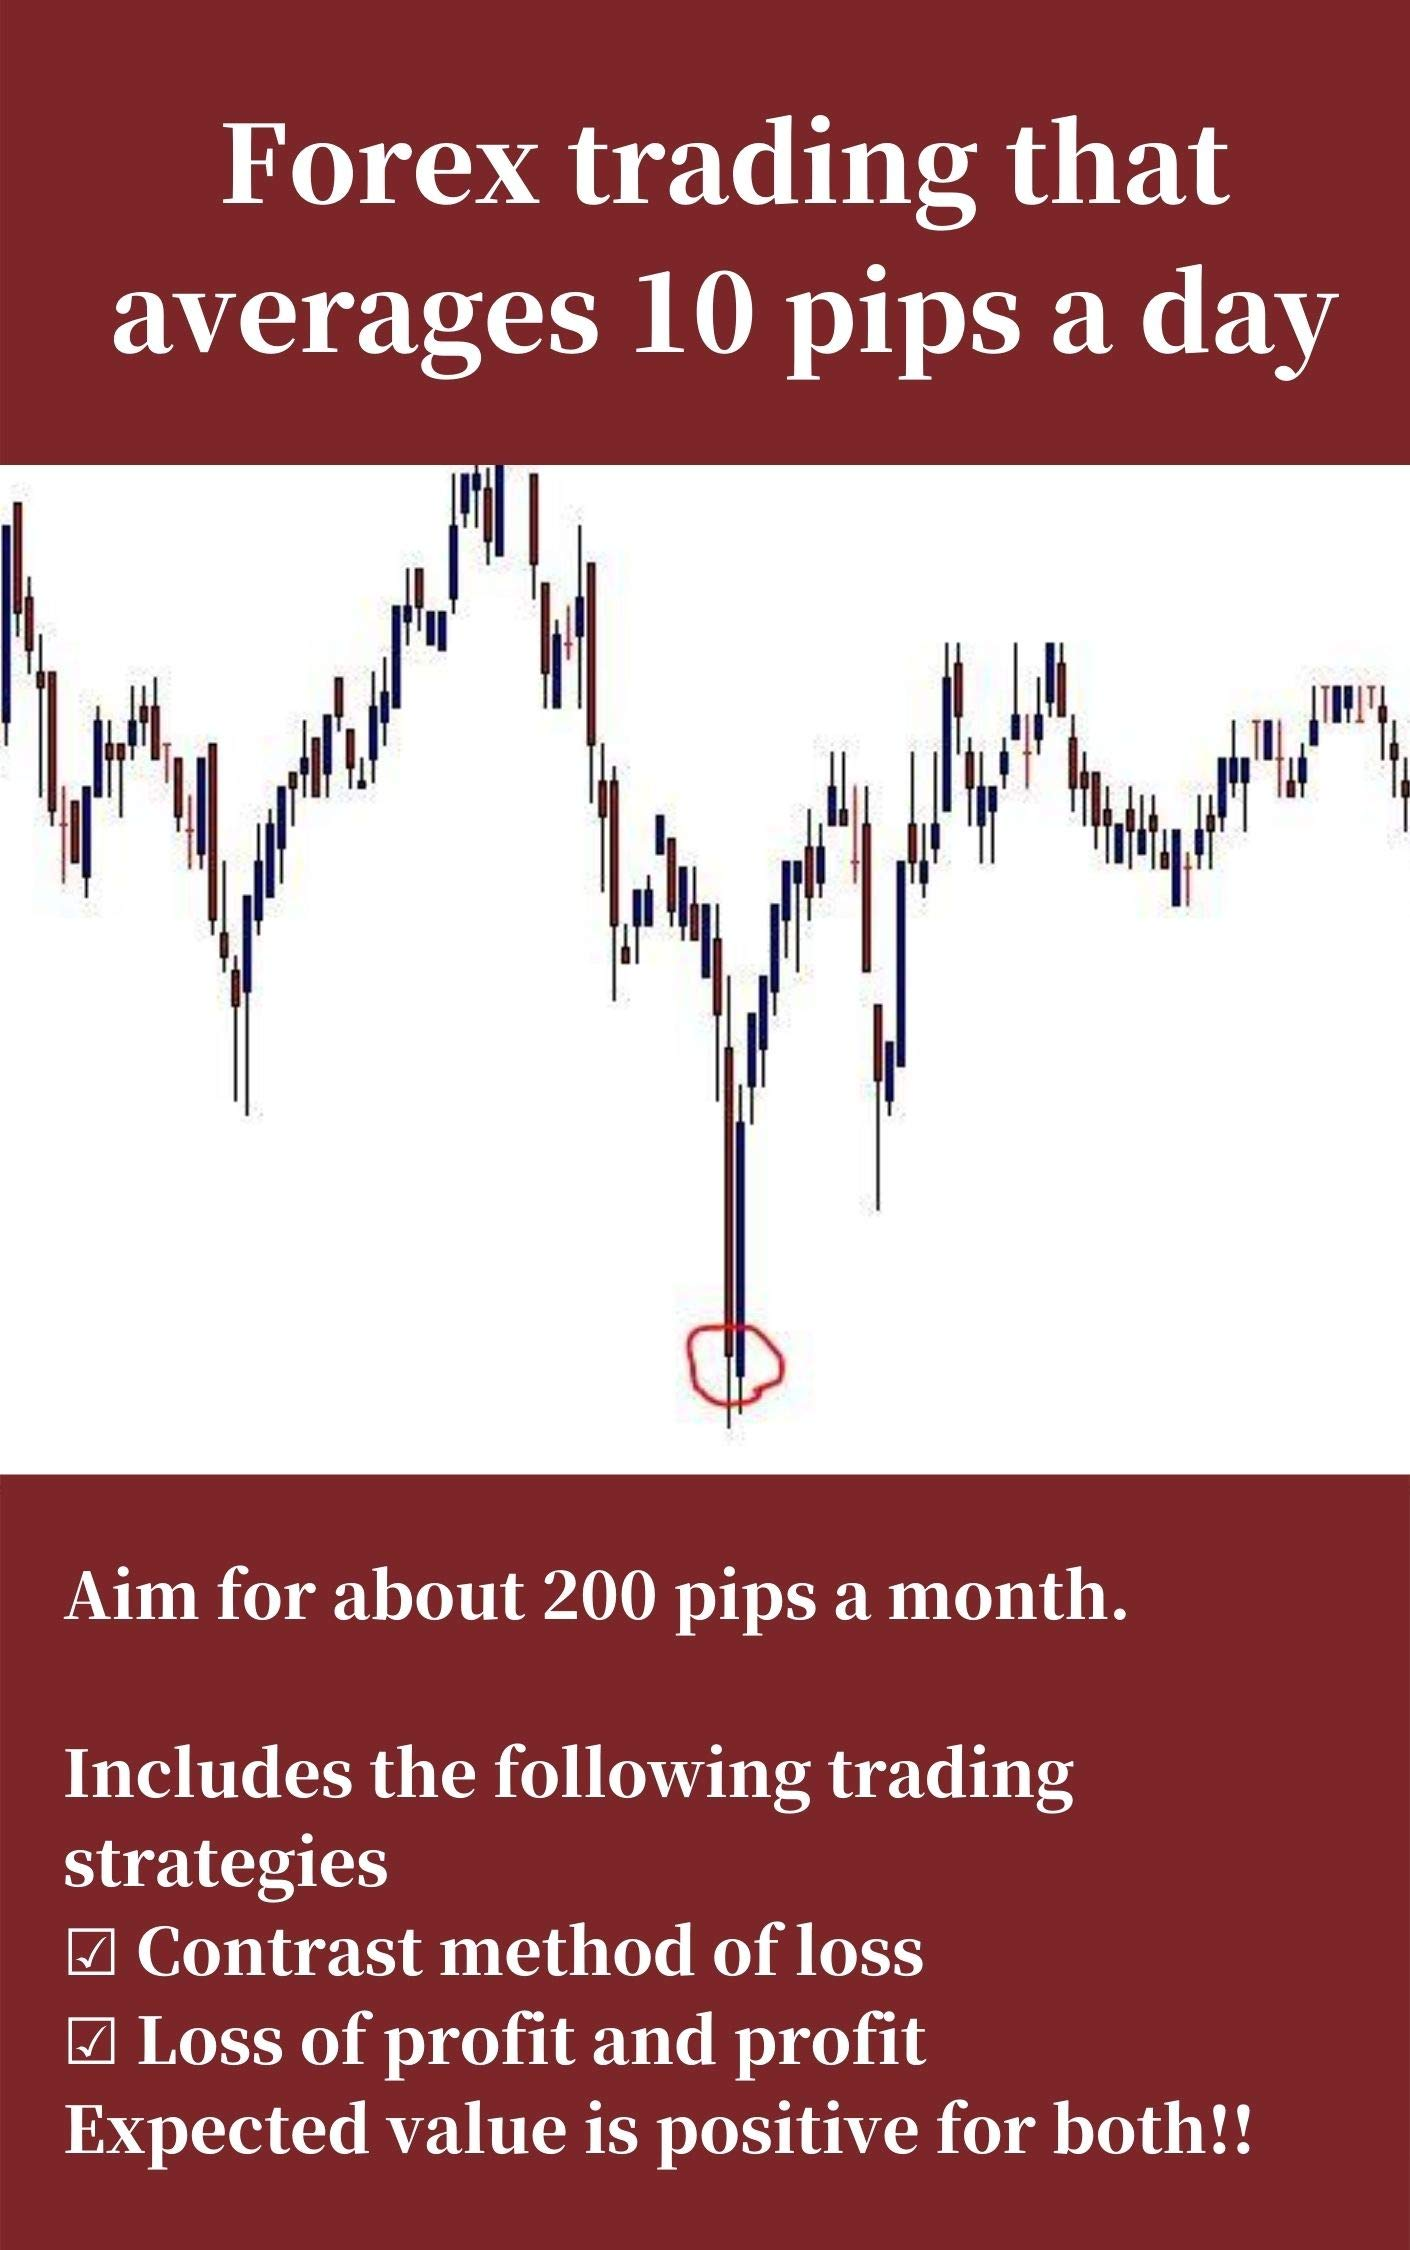 Forex trading that averages 10 pips a day